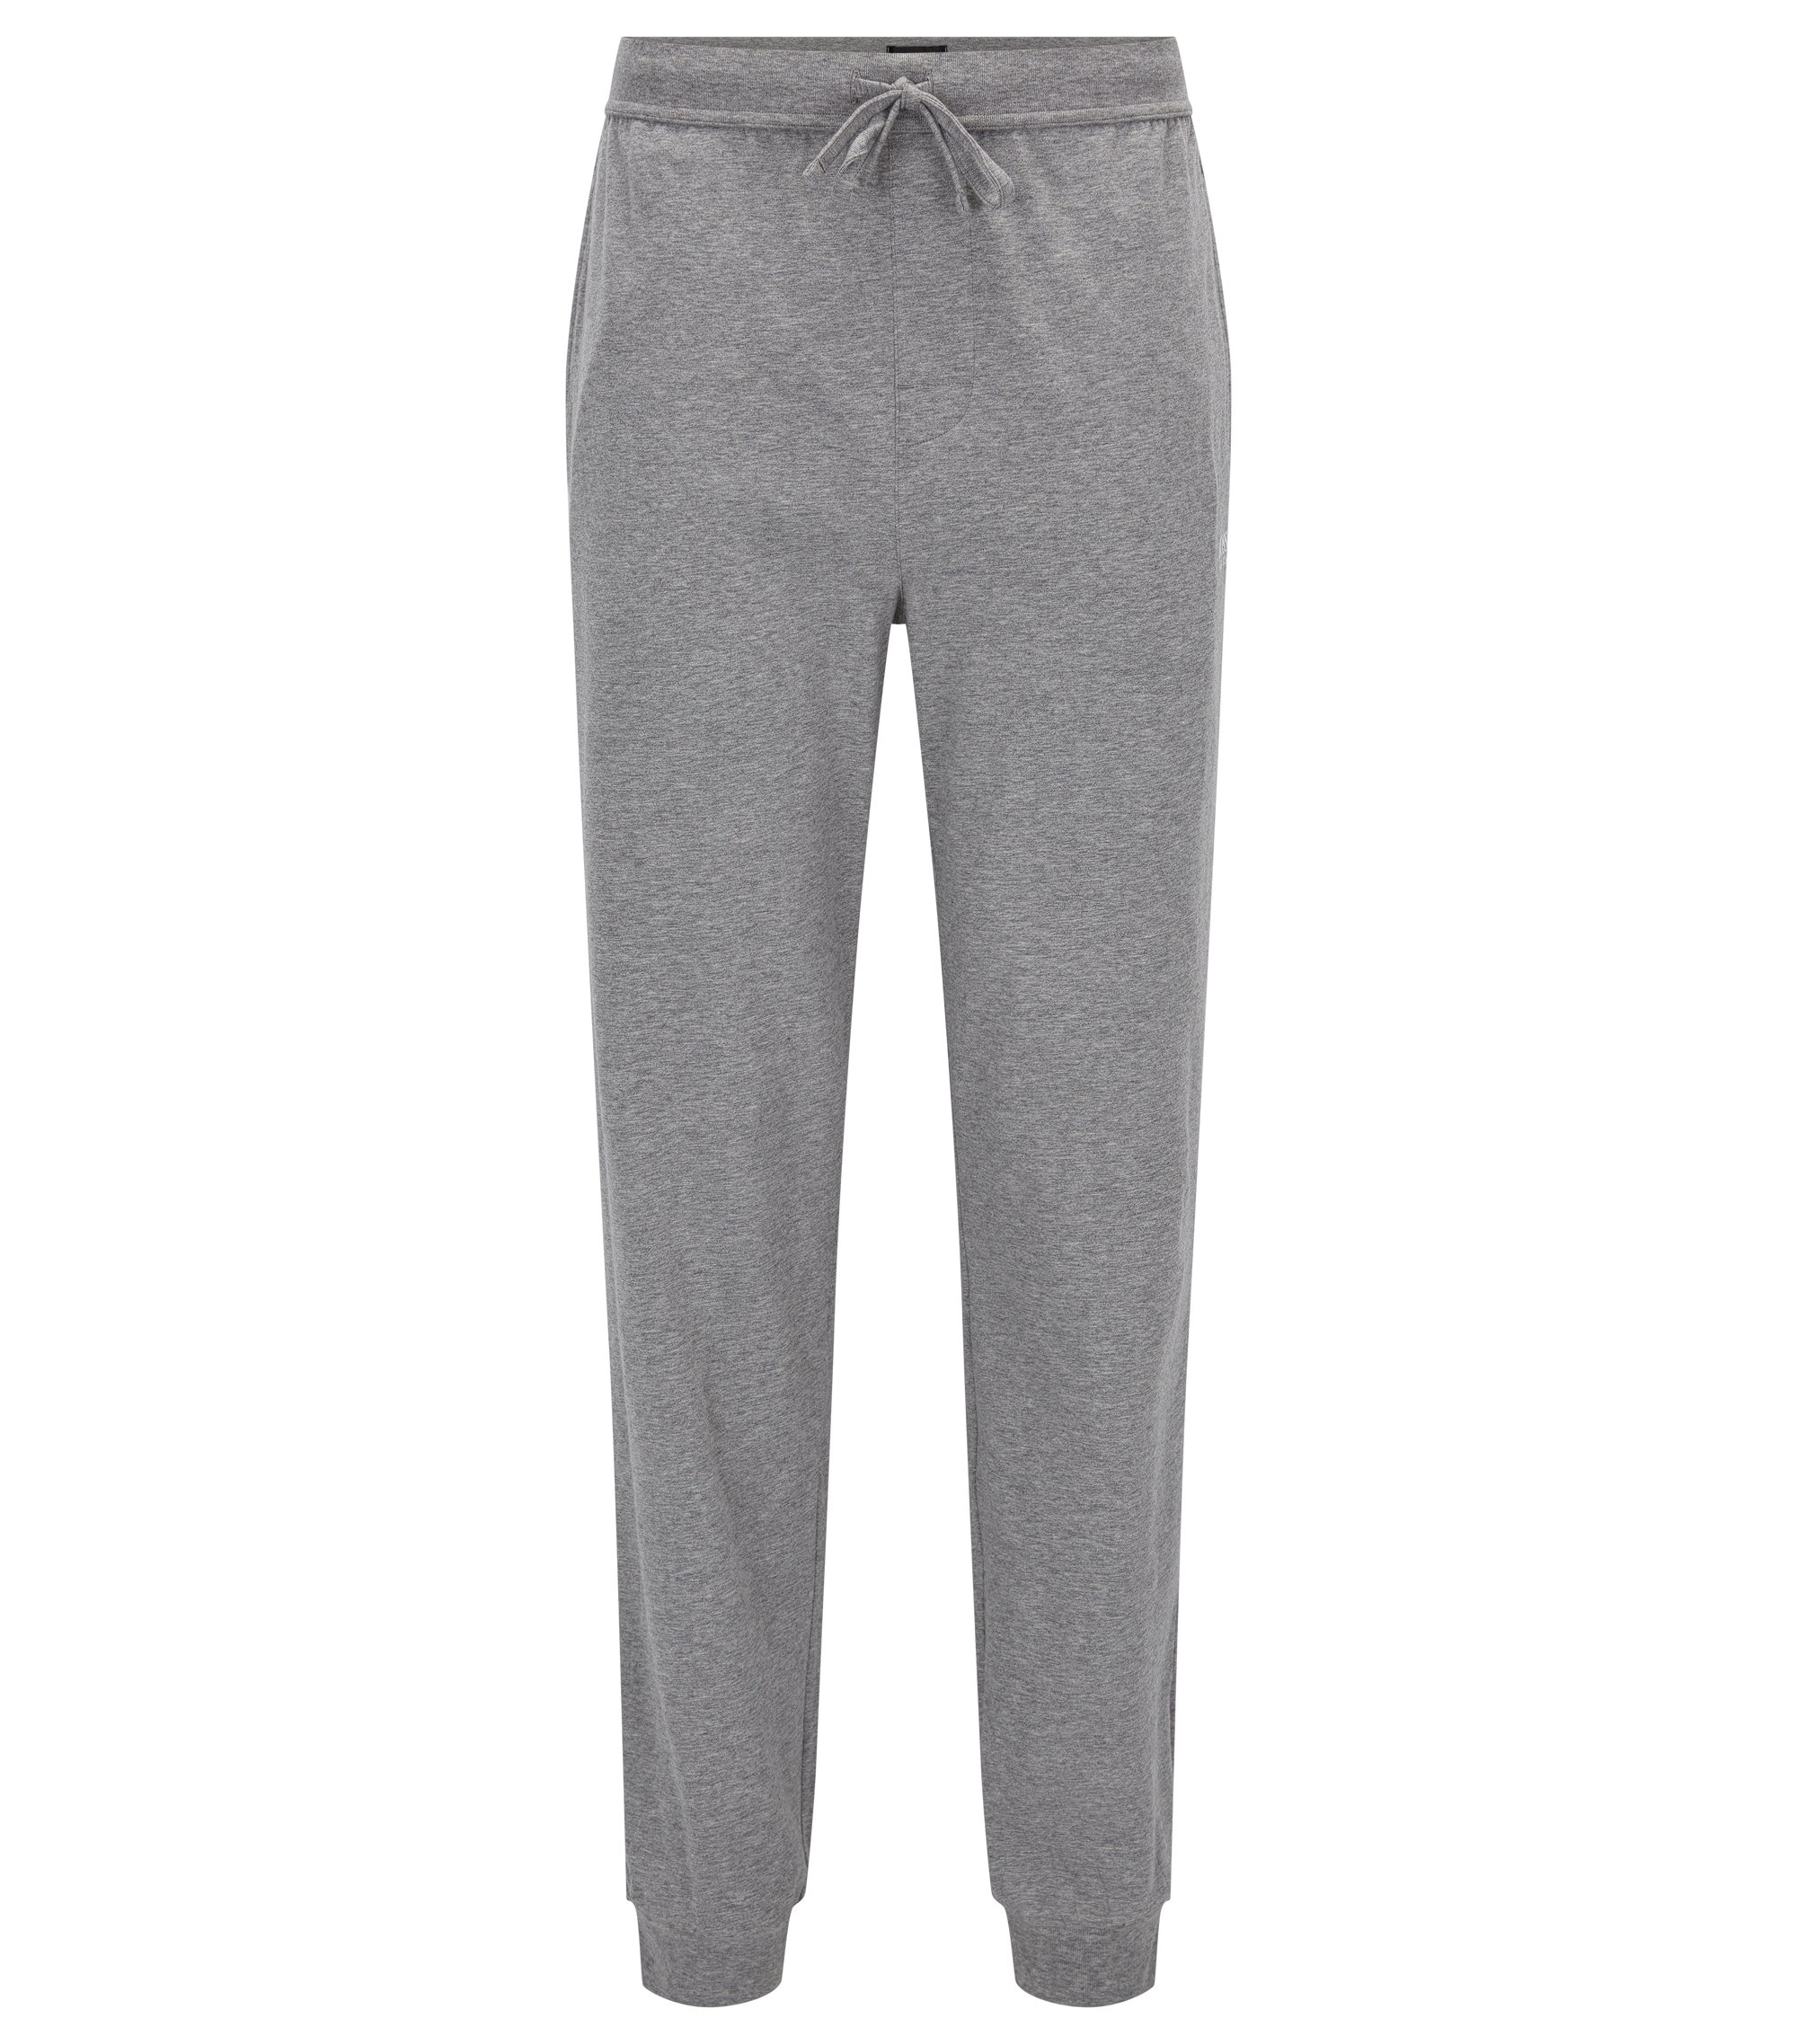 Drawstring loungewear bottoms in single jersey, Grey